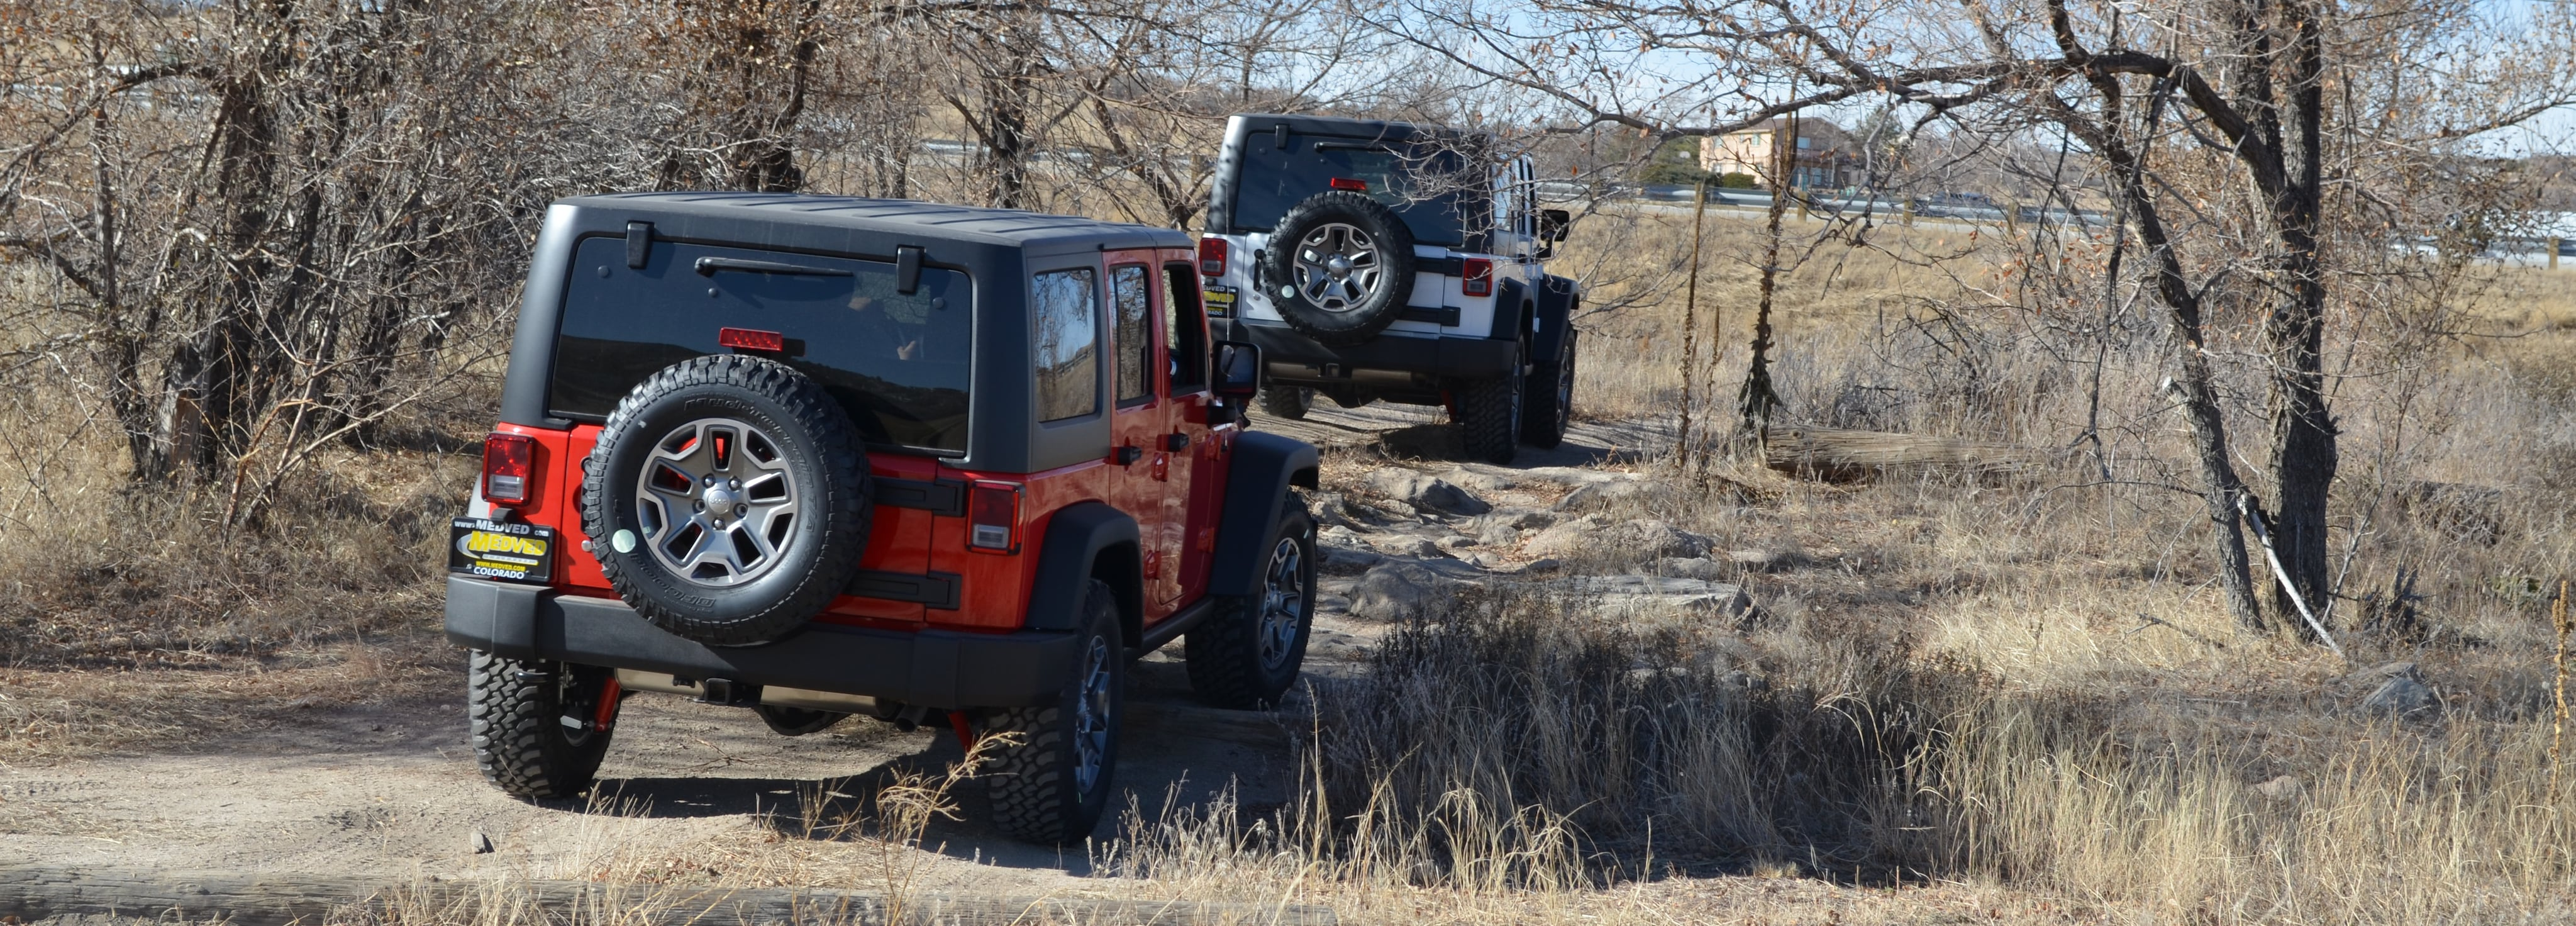 Jeep SUVs are ready to tackle any terrain.  Test drive a new Jeep vehicle today on our off road test track at Medved CDJR in Castle Rock, CO.